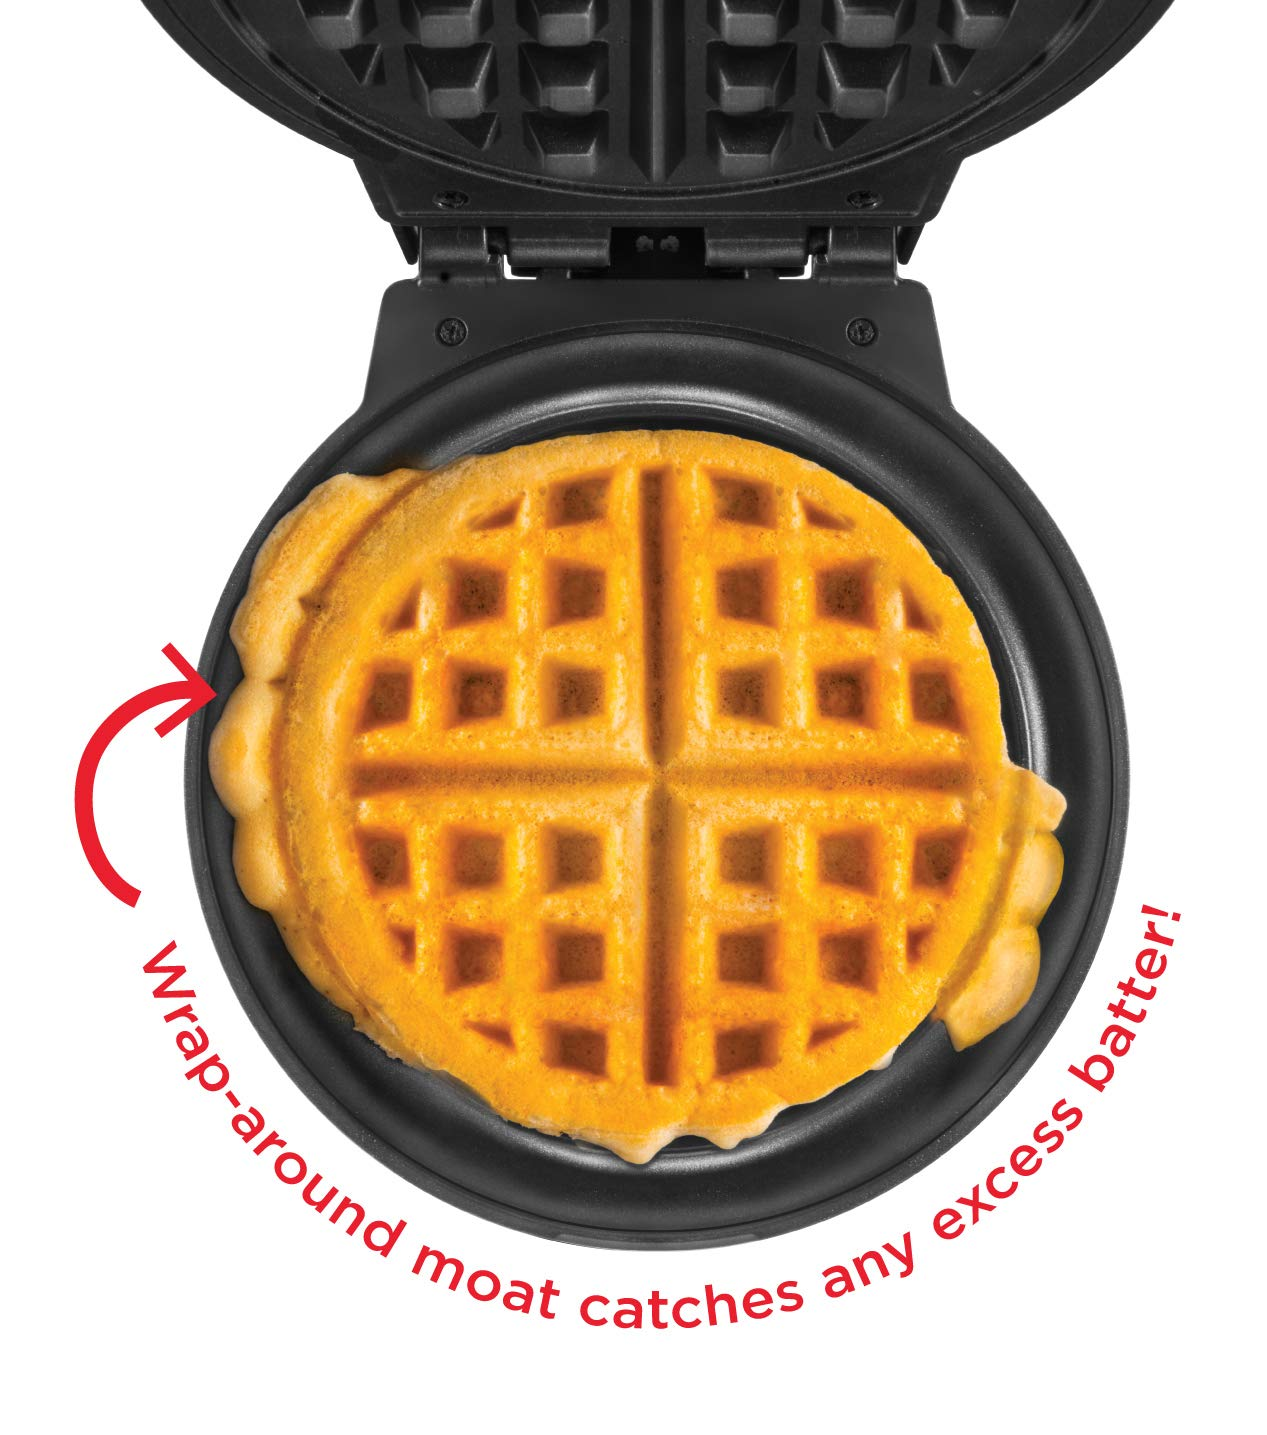 Chefman Anti-Overflow Belgian Maker w/Shade Selector & Mess Free Moat Round Waffle-Iron w/Nonstick Plates & Cool Touch Handle, Measuring Cup Included, Red by Chefman (Image #2)